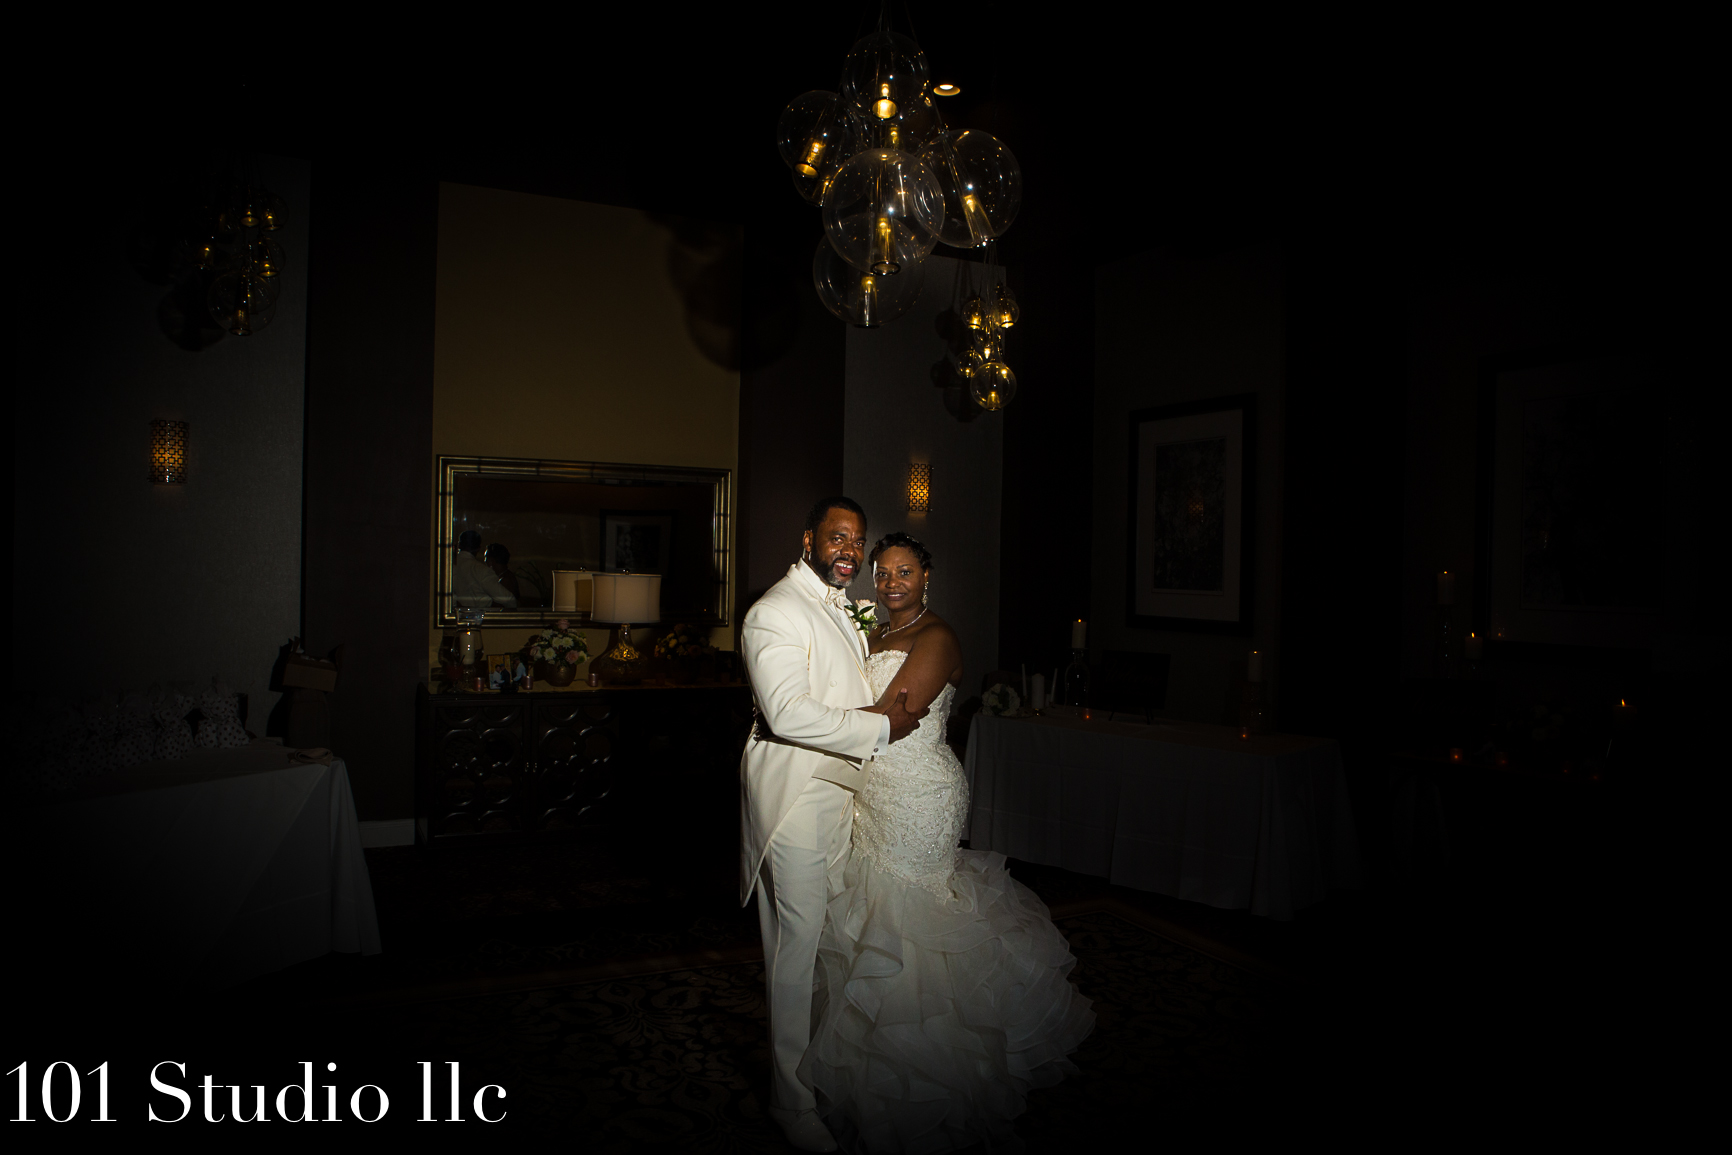 101 studio llc -Double tree by Hilton Raleigh wedding 27.jpg